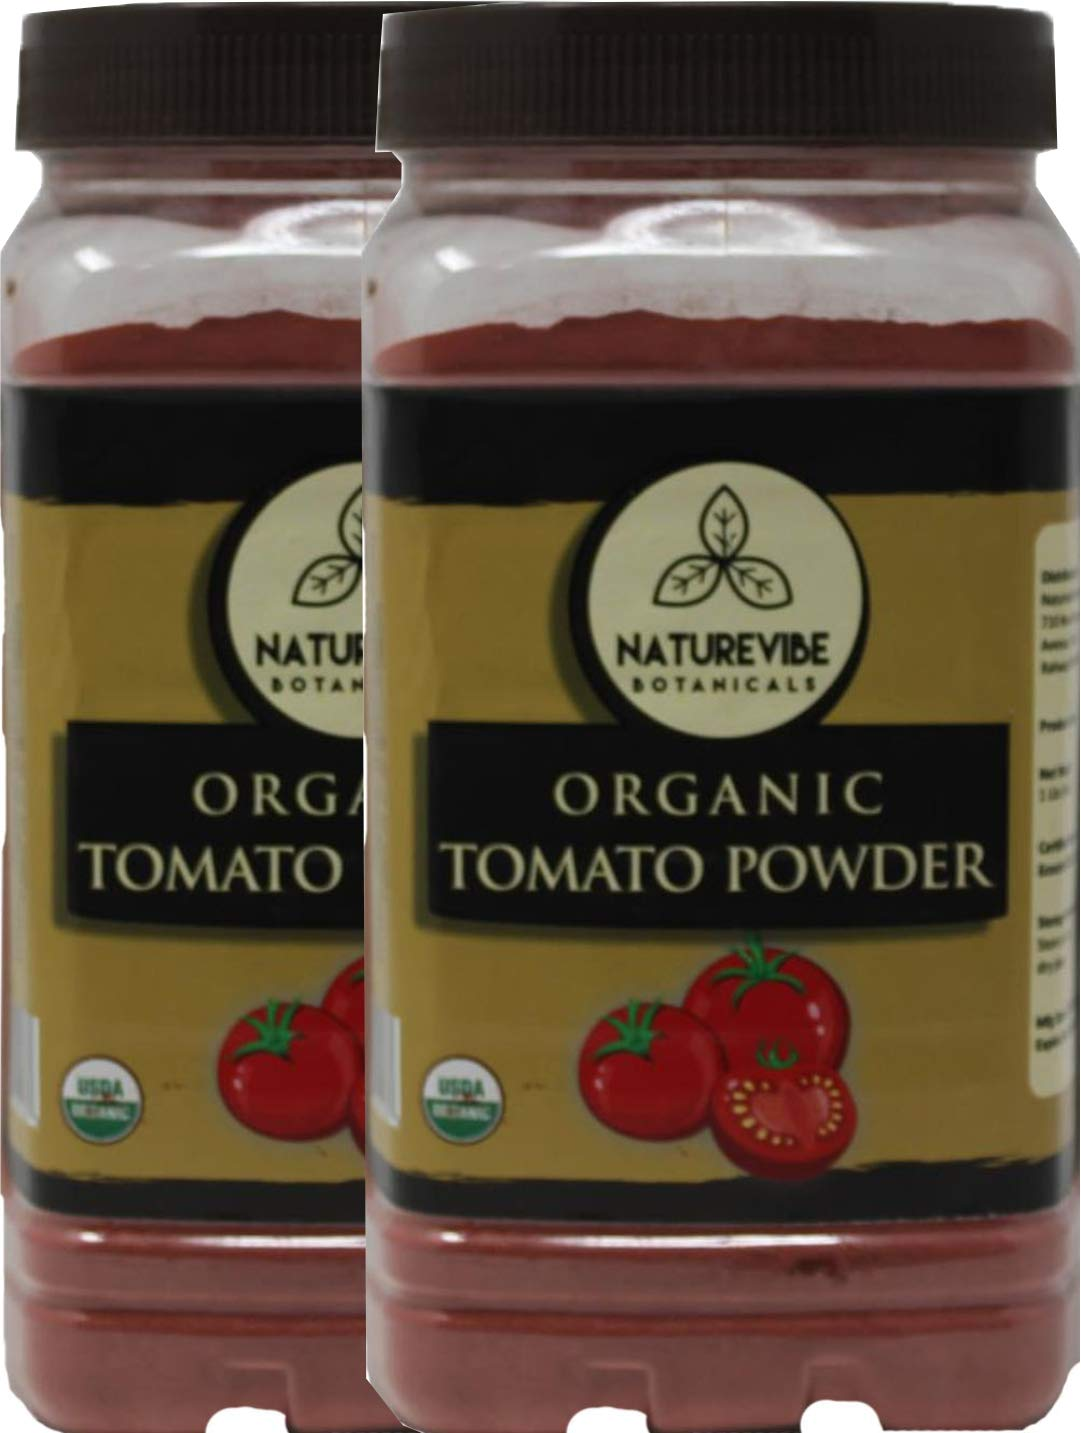 Naturevibe Botanicals Organic Tomato Powder (2lbs) (2 Pack of 1lbs each) | Non GMO | Boosts Digestion| Adds flavour and taste....